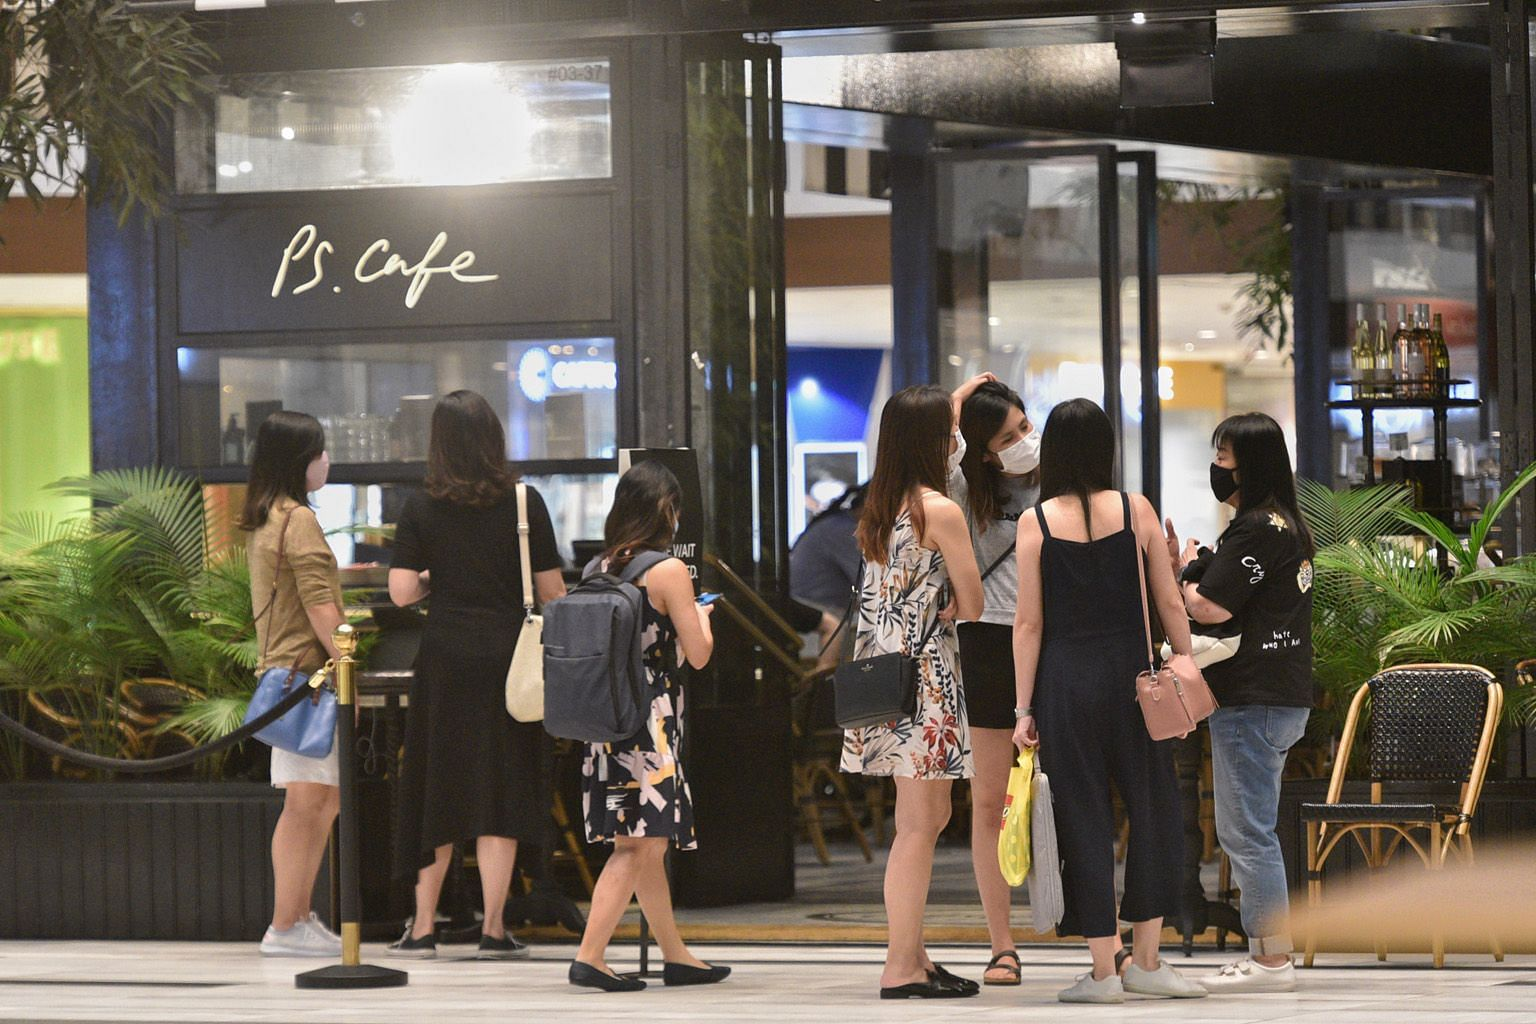 With businesses hit as a result of the two-month circuit breaker and ongoing Covid-19 pandemic, Prime Minister Lee Hsien Loong said Singapore's economy is likely to see negative economic growth this year of minus 3 per cent or 4 per cent, or more. ST